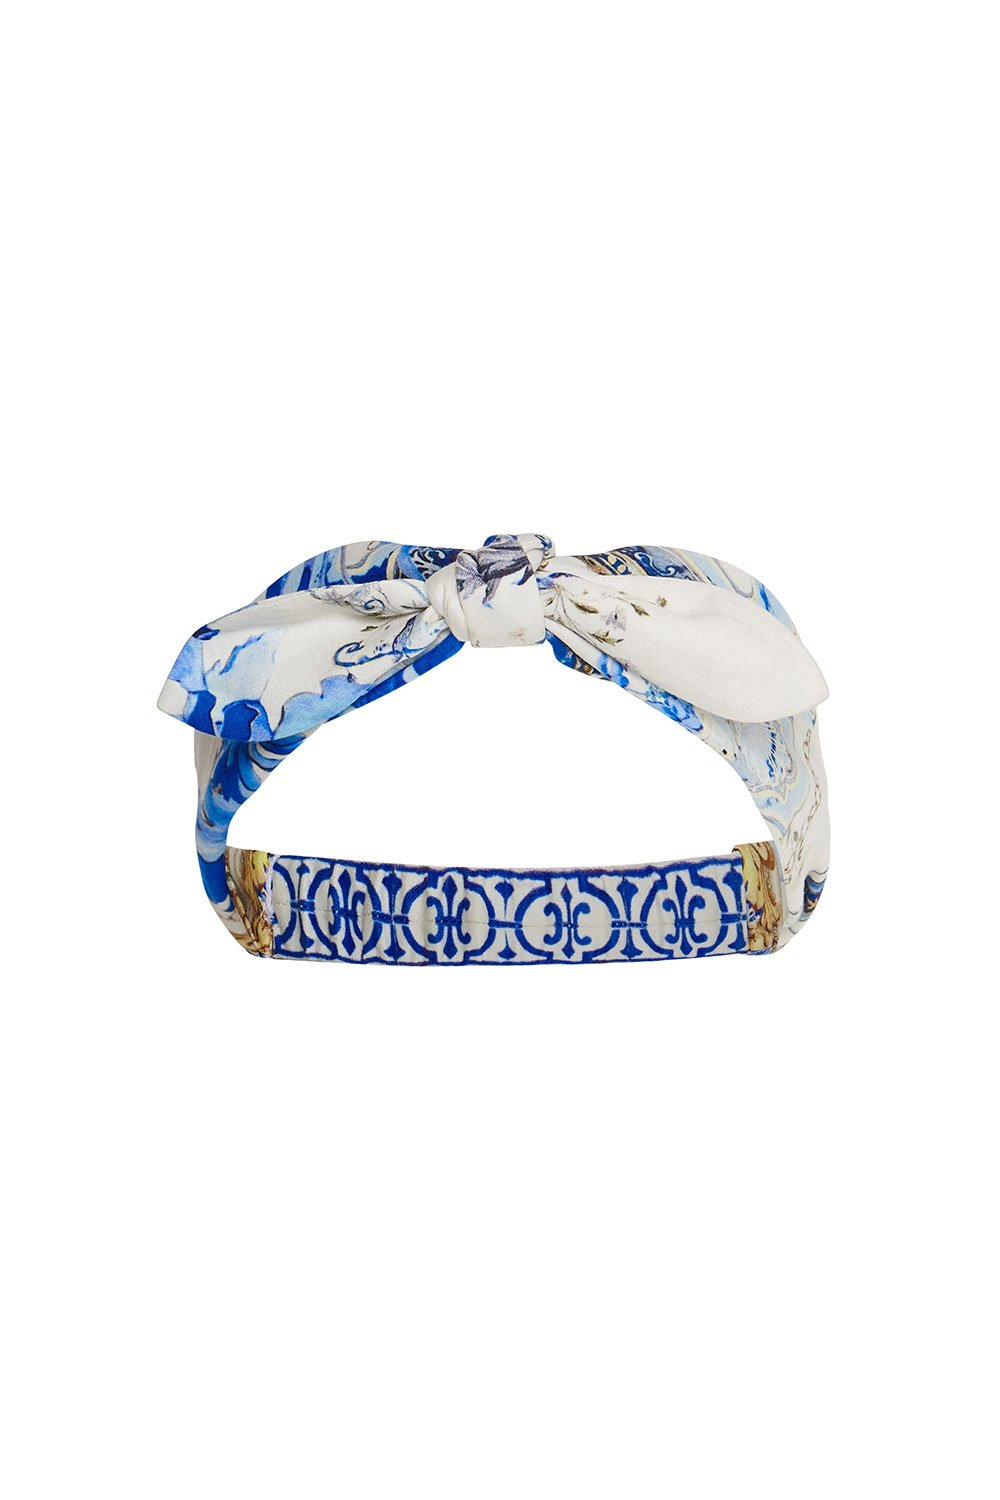 CAMILLA HEADBAND WITH TIE SAINT GERMAINE